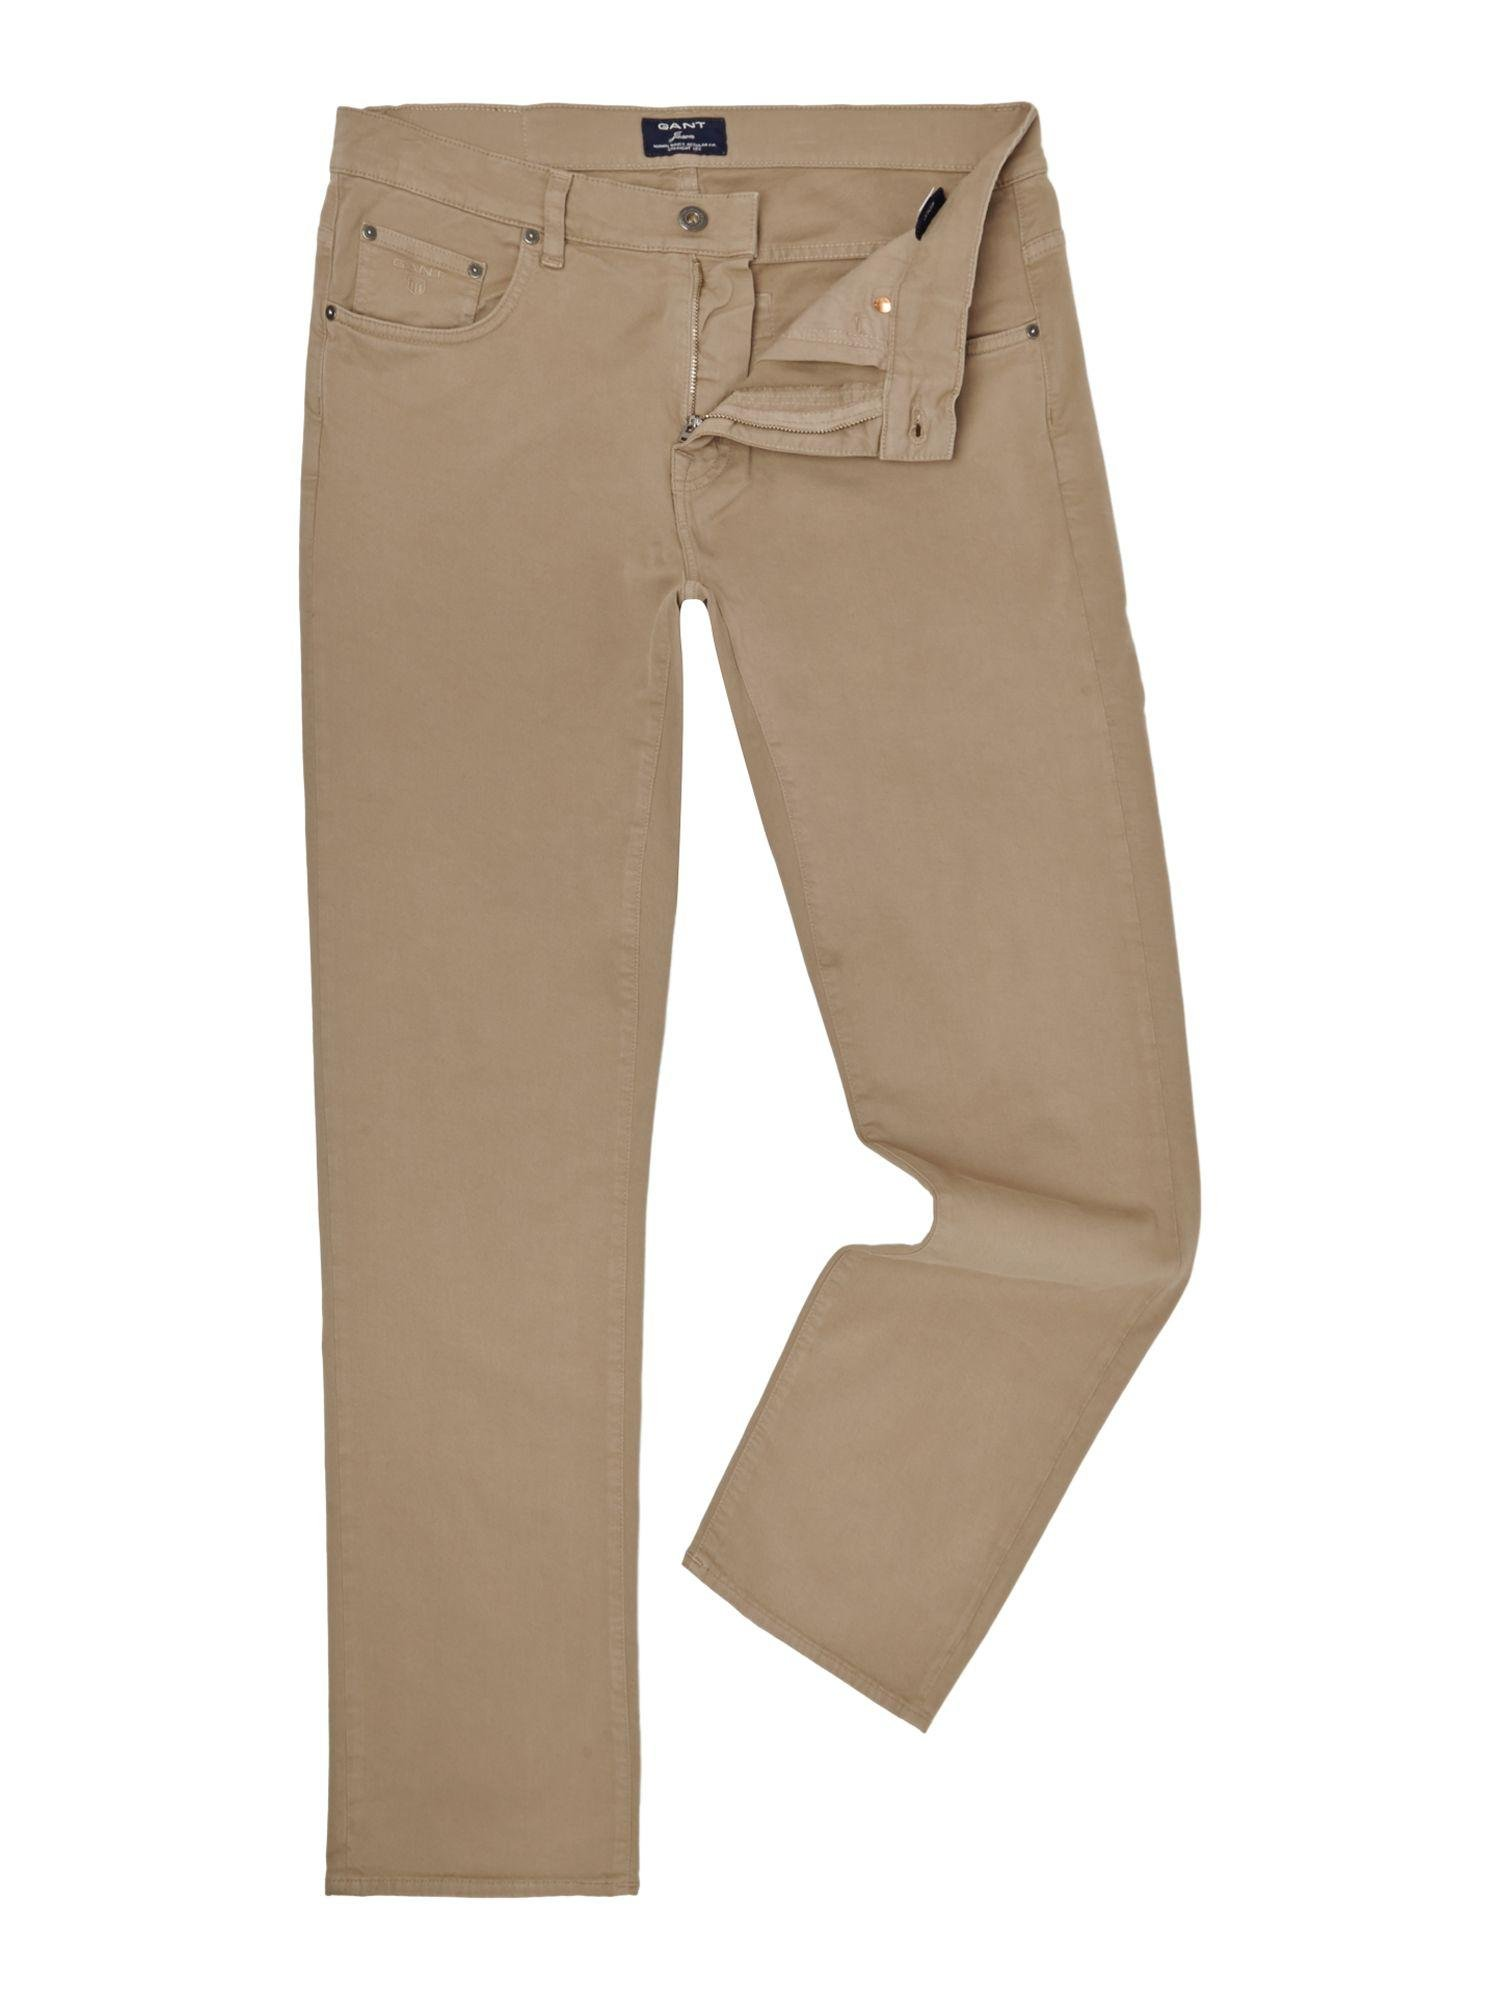 a91a3597b6 Gant Jason Comfort Desert Twill Jeans in Brown for Men - Lyst